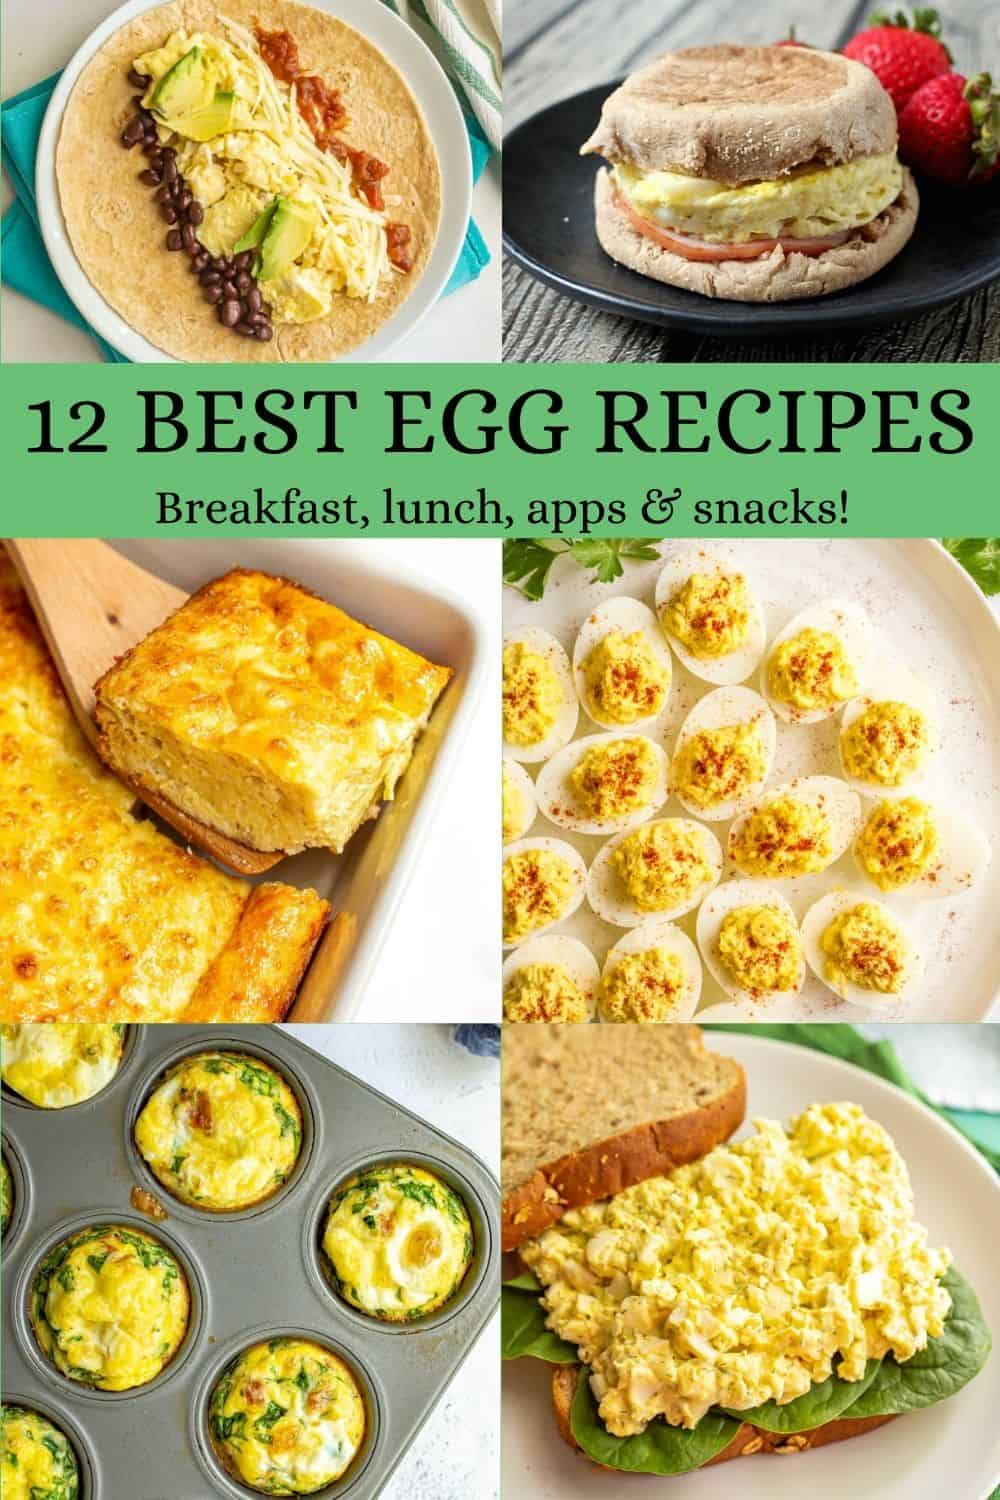 A collage of six food photos featuring eggs and a text block in the middle